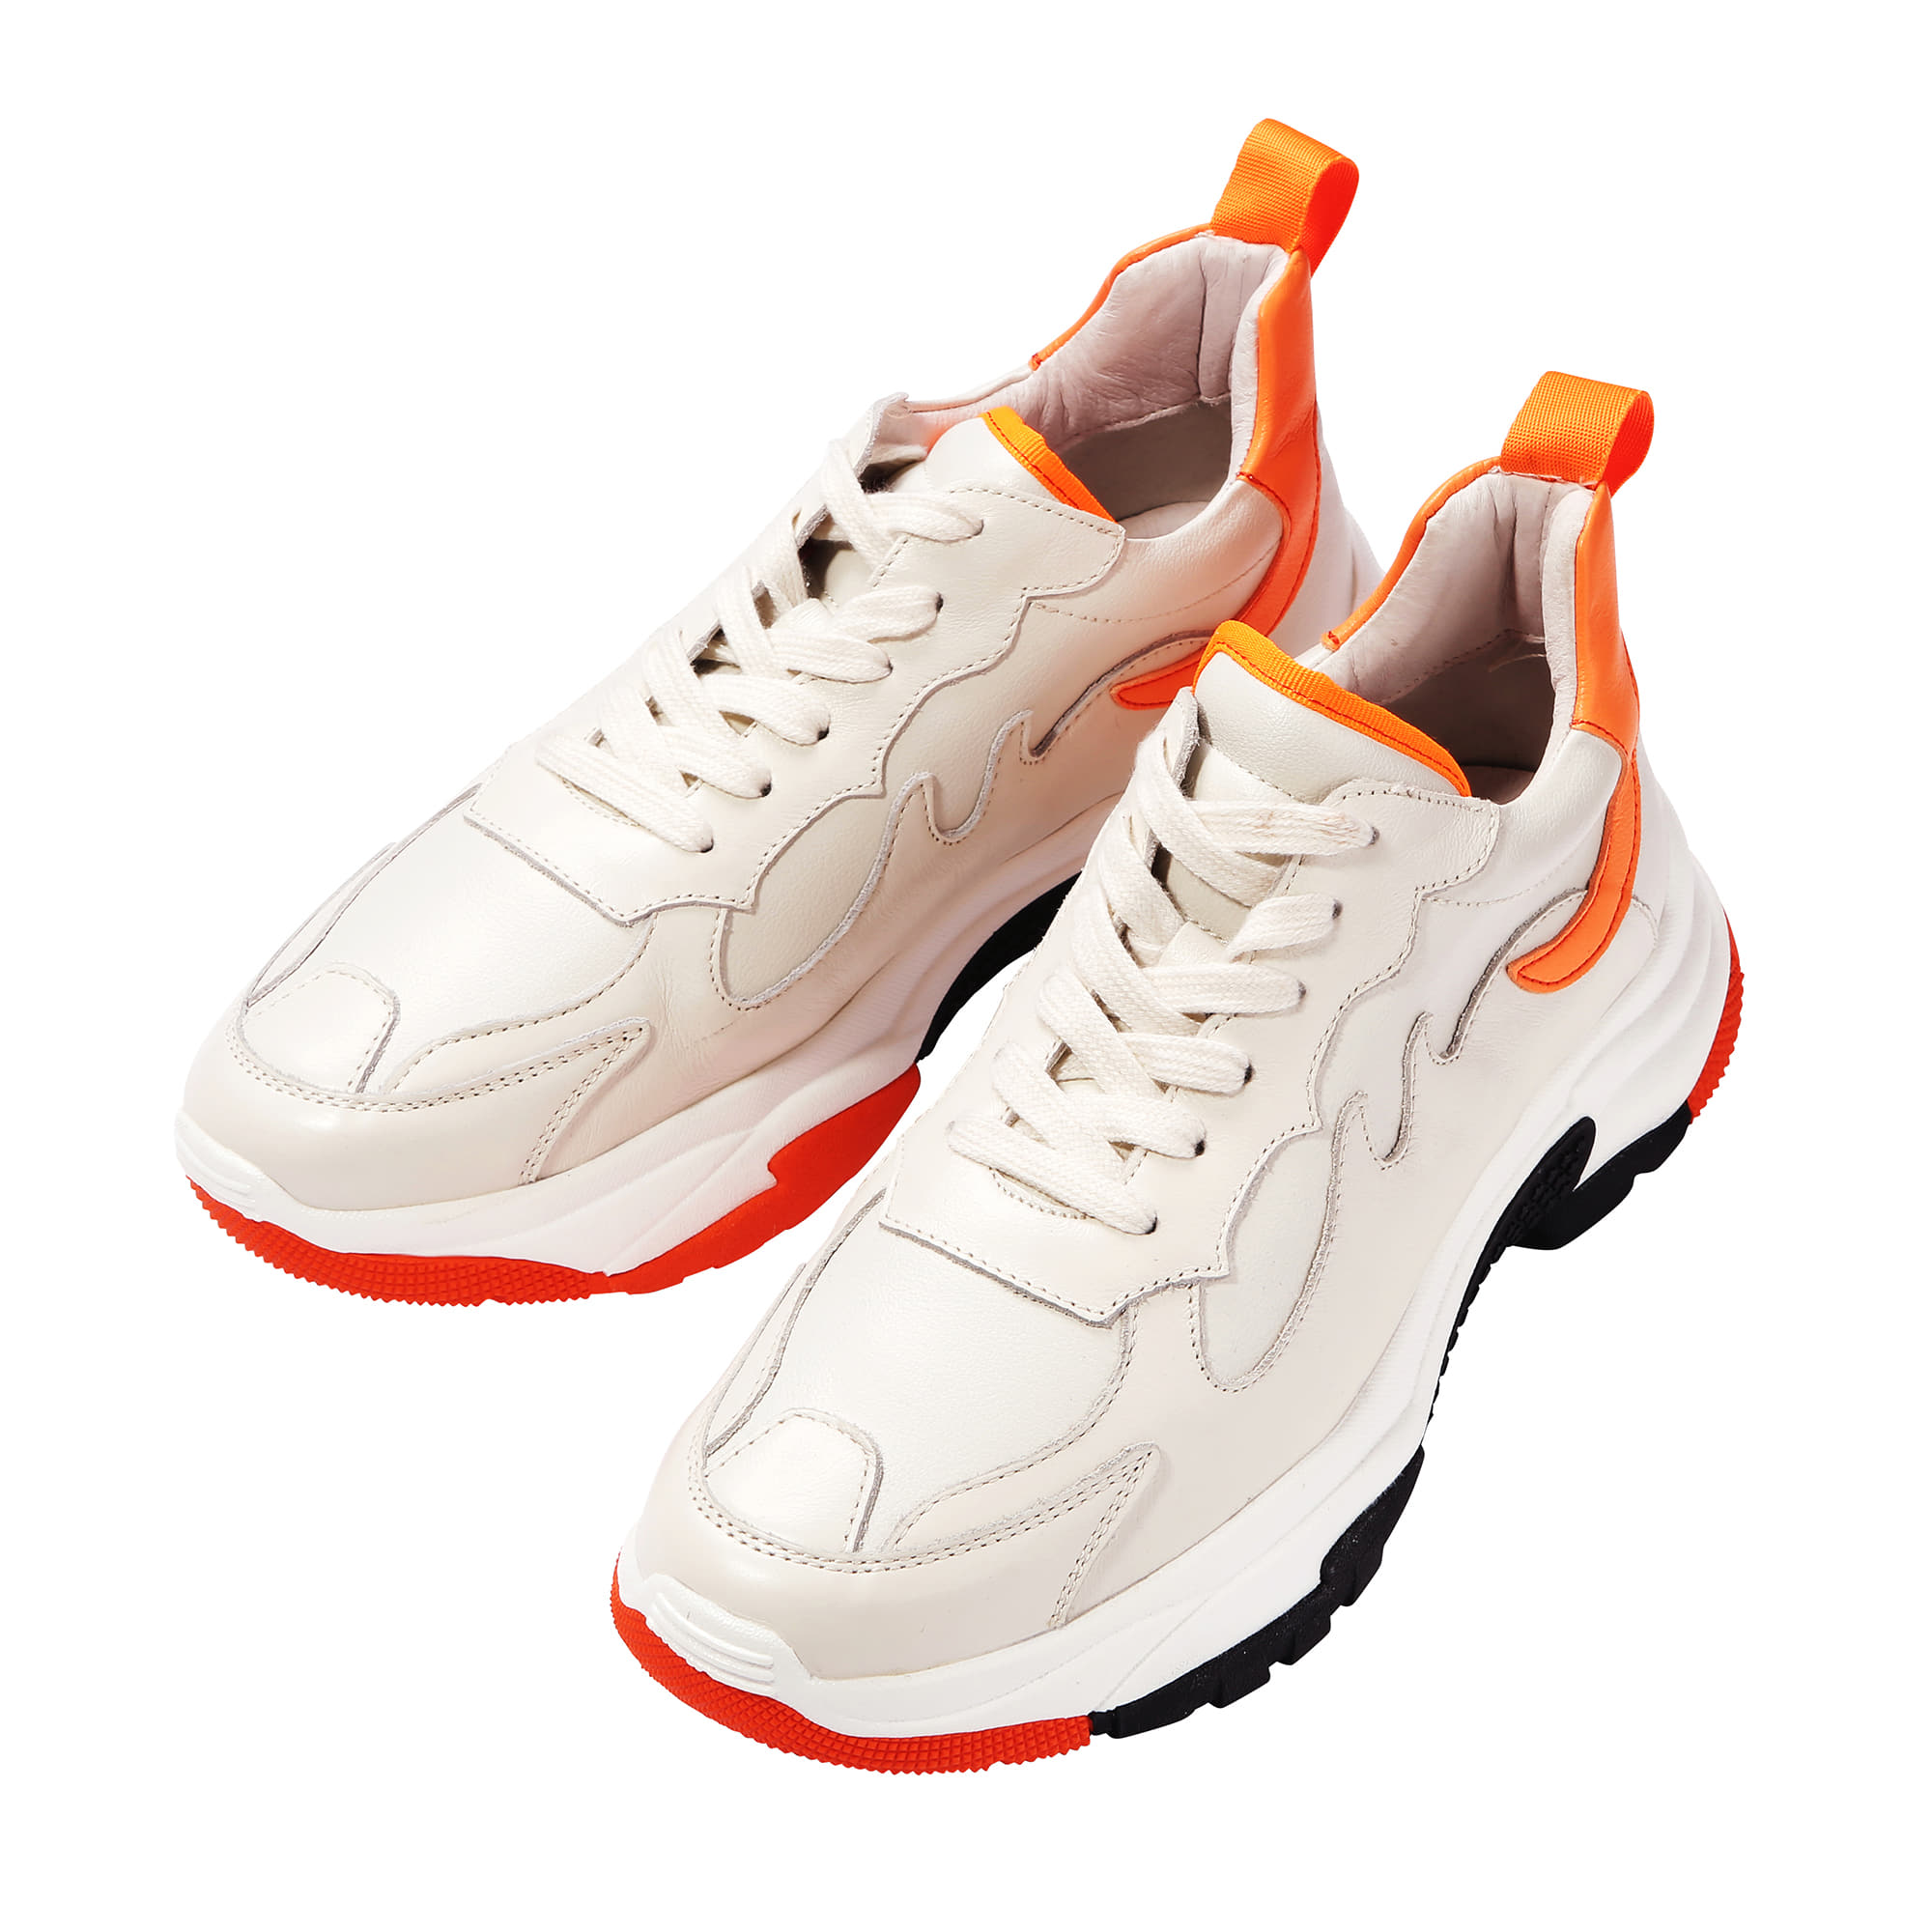 19FW MM Runner sneakers MYASH0502